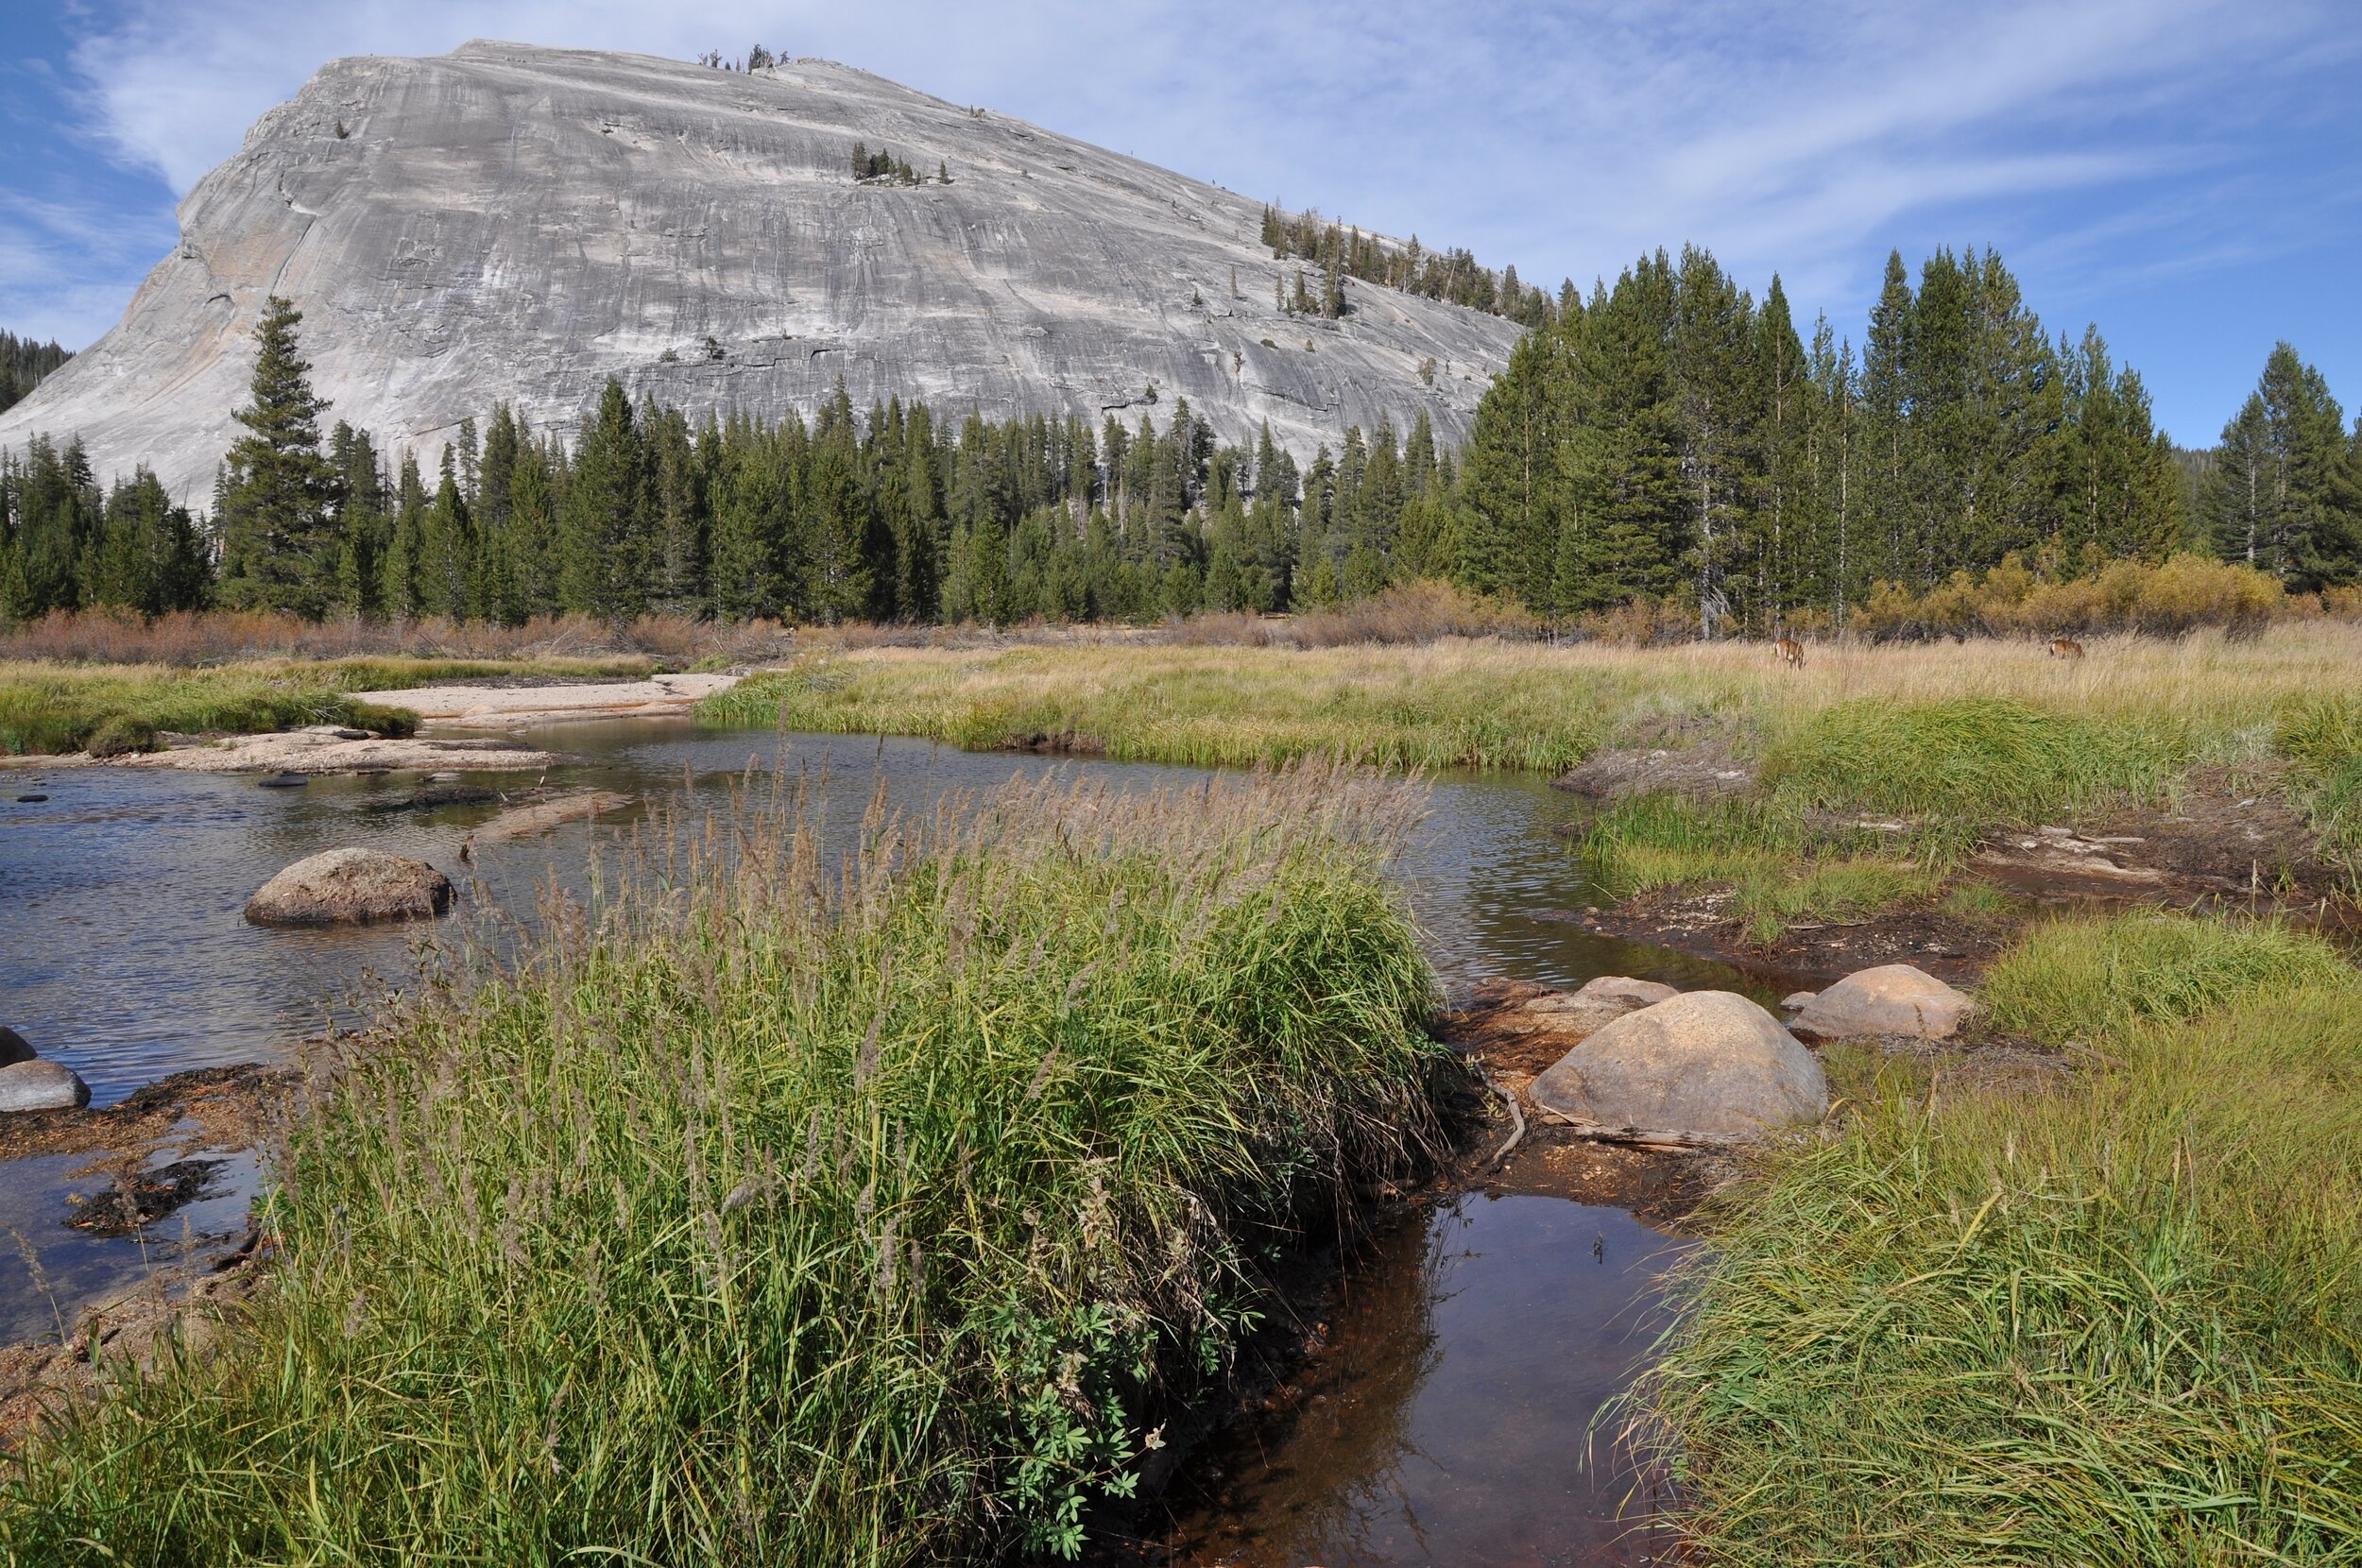 Tuolumne Meadows where the Dana Fork and the Lyell Fork combine to form the Tuolumne River